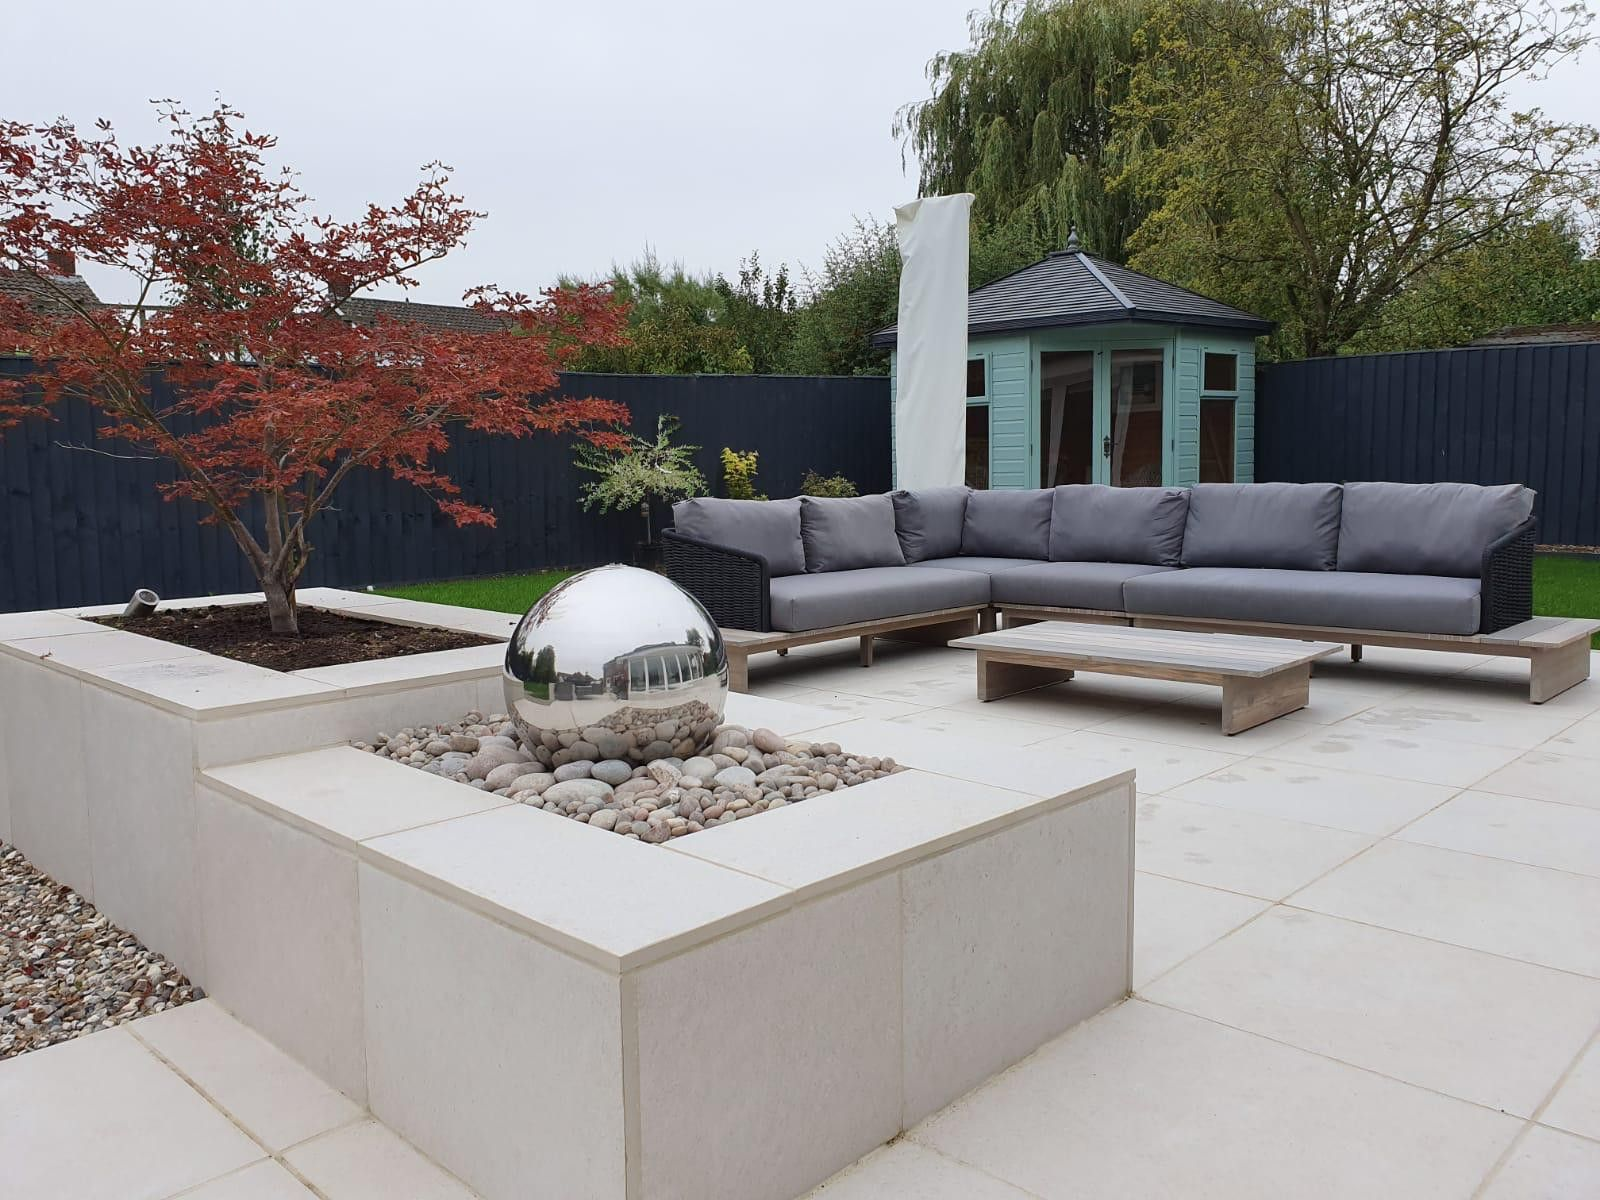 Florence White Porcelain Paving | Outdoor Tiles | London Stone | Patio  garden design, Patio, Tiles london